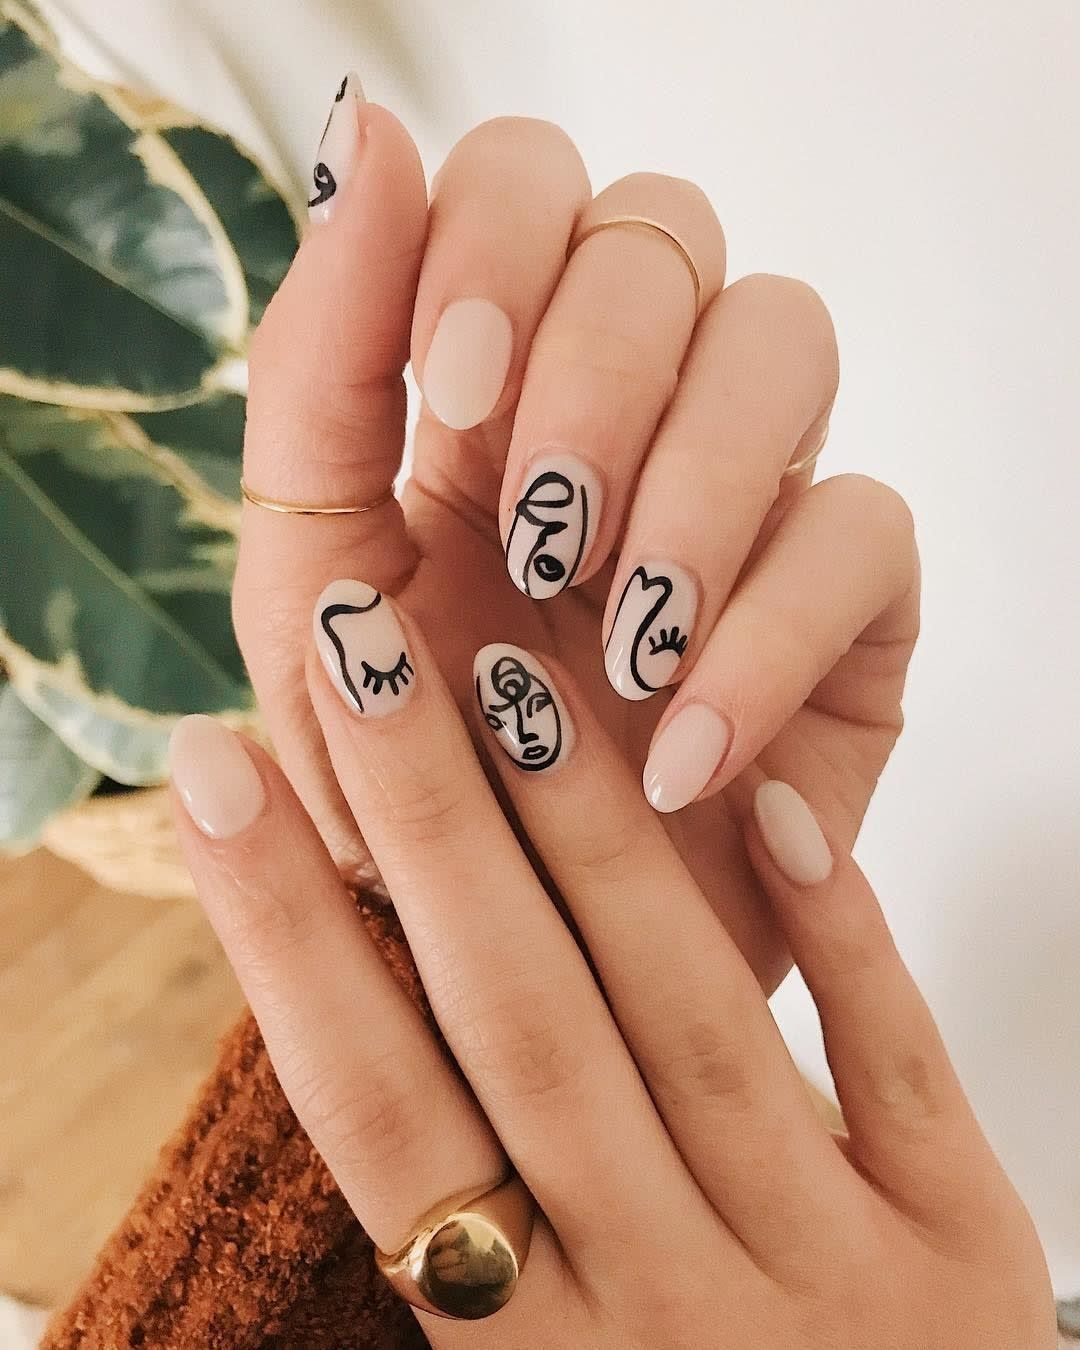 Photo of People are painting their nails like Picasso paintings, and honestly, they look pretty cool.